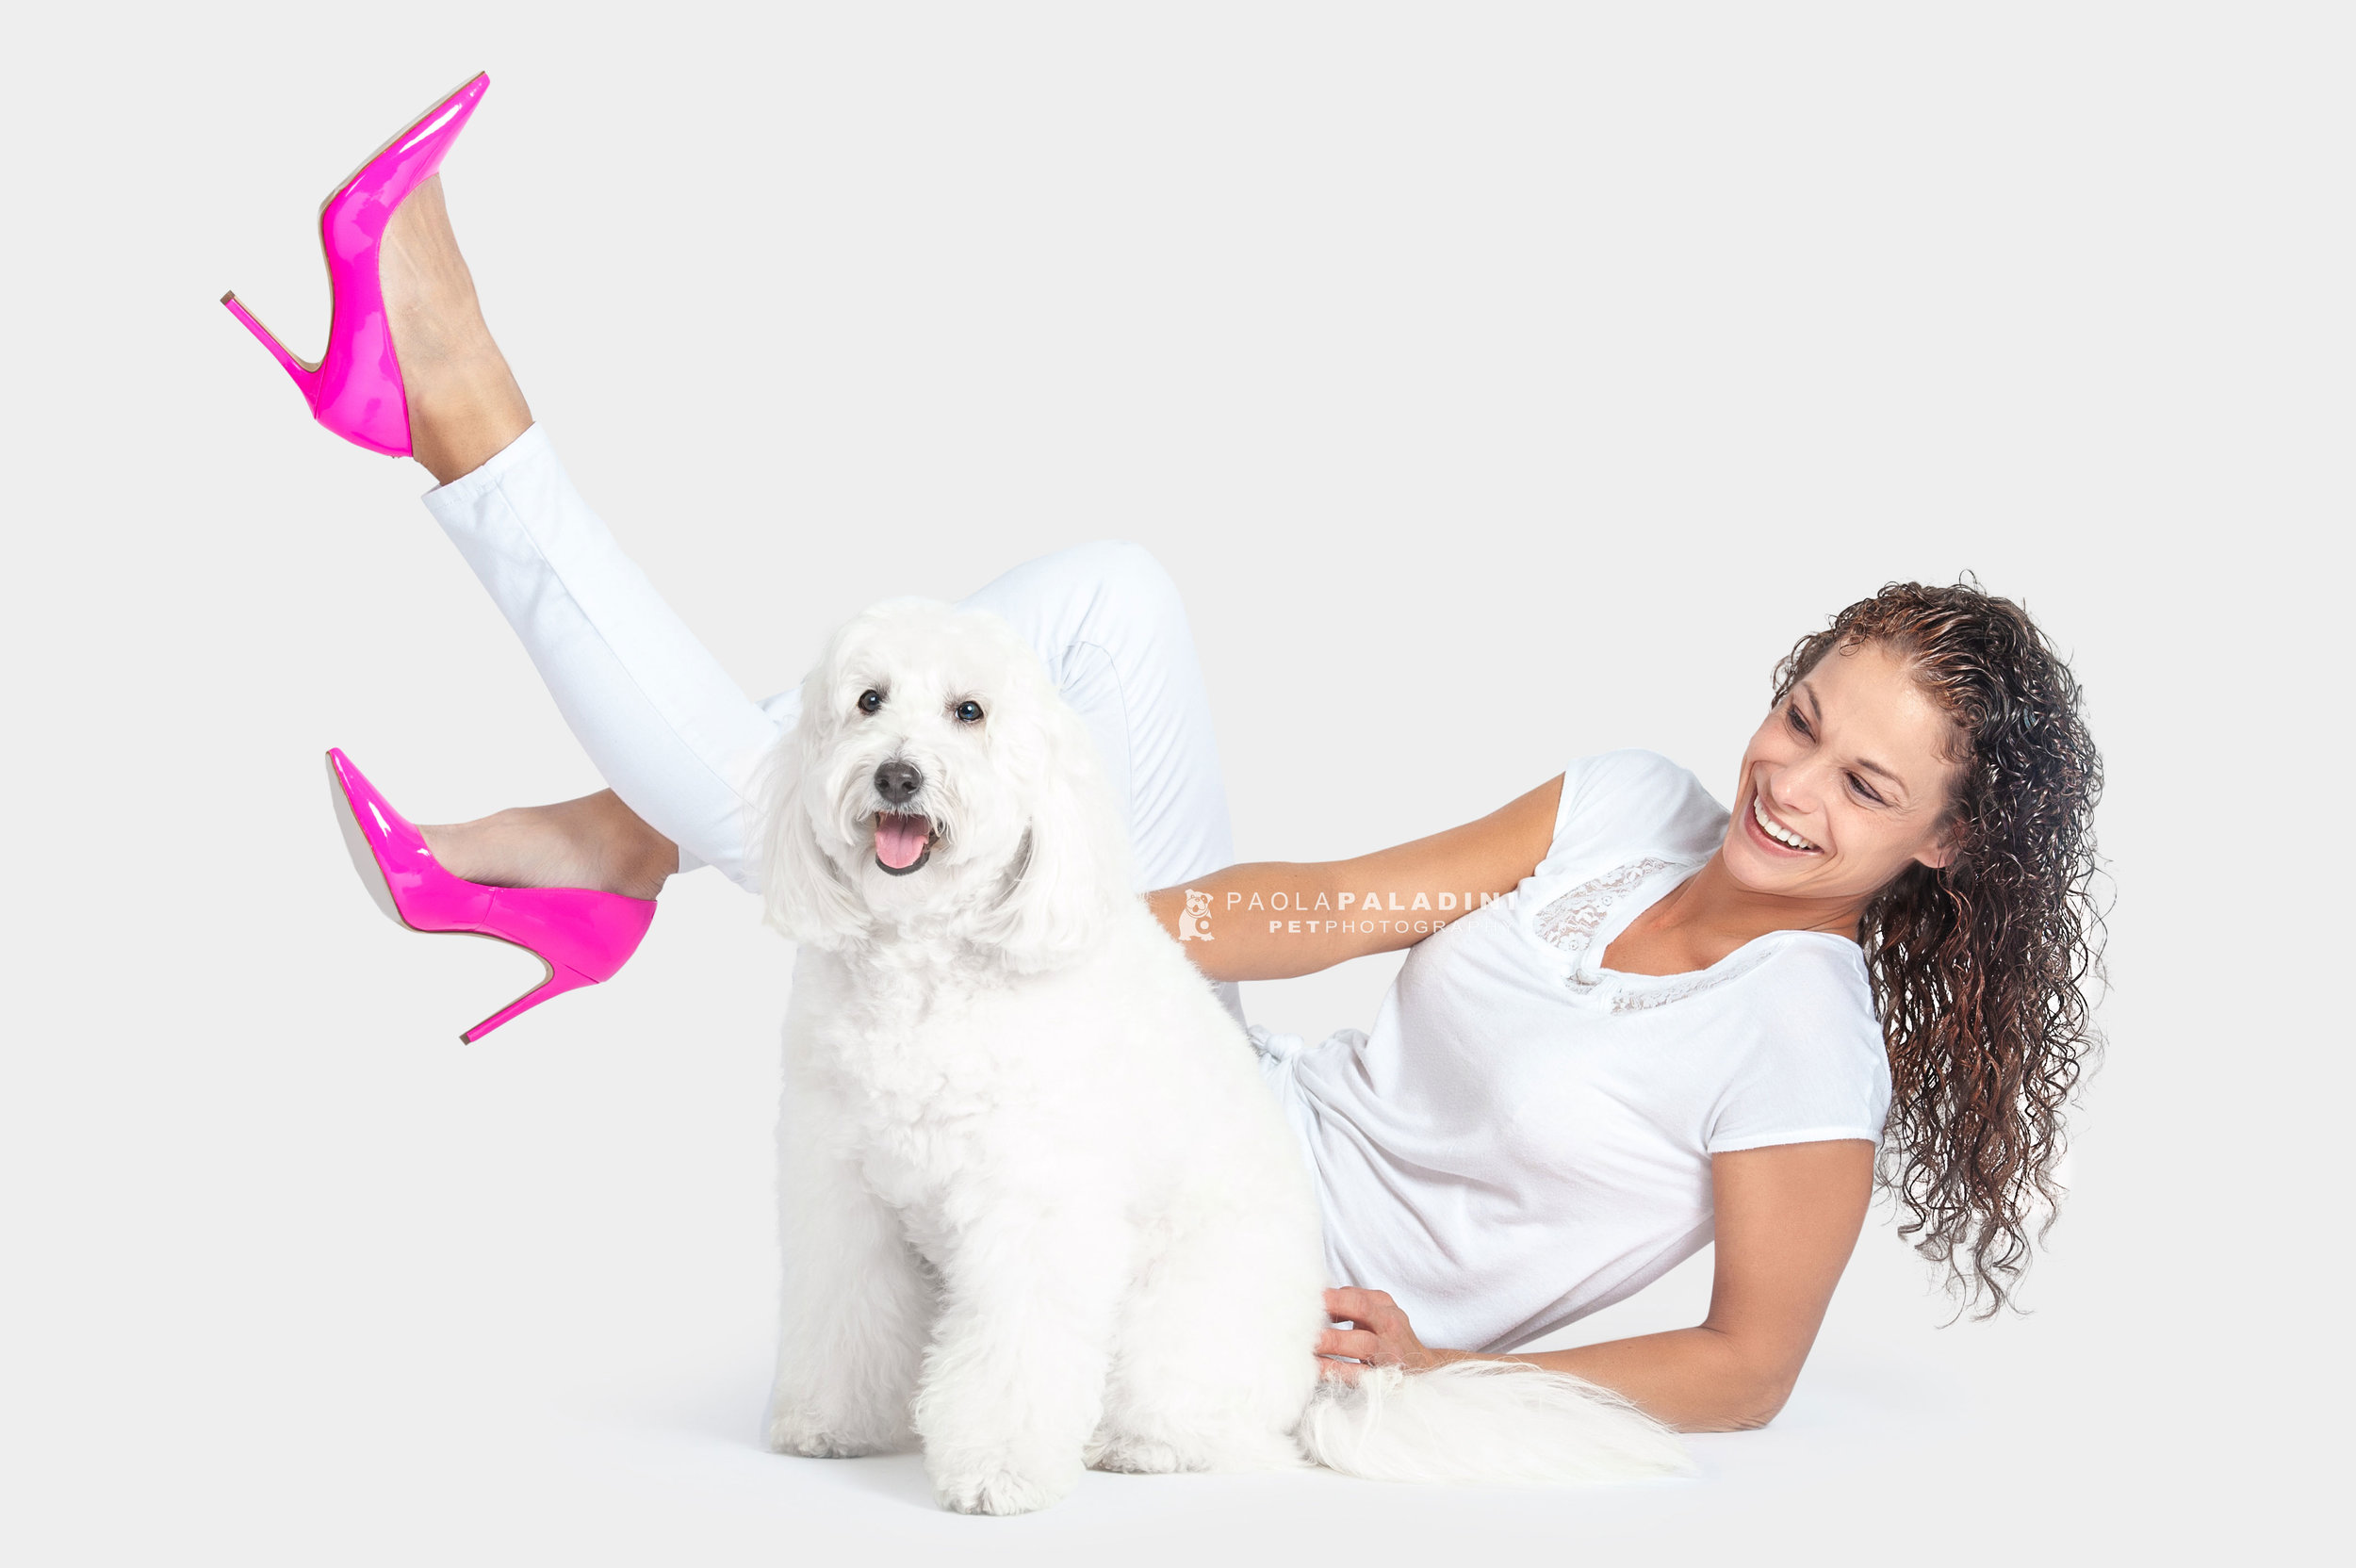 Paola-Paladini-White-on-White-Hounds-and-Heels-White-poodle